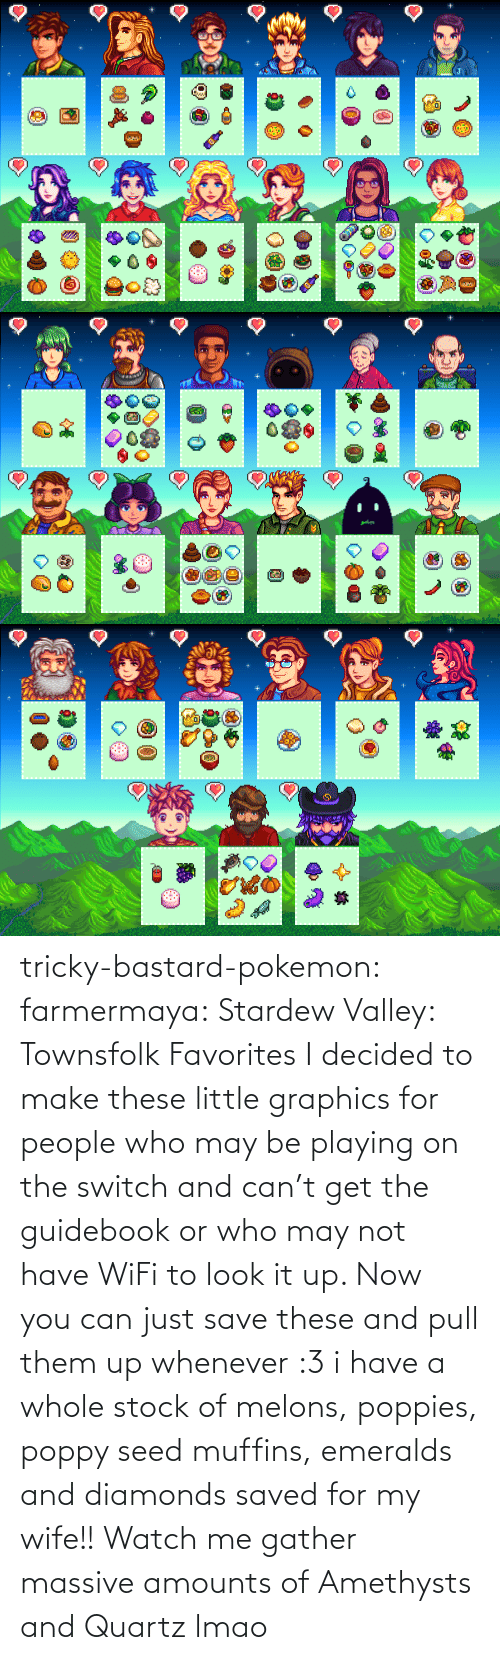 I Have A: tricky-bastard-pokemon:  farmermaya: Stardew Valley: Townsfolk Favorites  I decided to make these little graphics for people who may be playing on the switch and can't get the guidebook or who may not have WiFi to look it up. Now you can just save these and pull them up whenever :3   i have a whole stock of melons, poppies, poppy seed muffins, emeralds and diamonds saved for my wife!!    Watch me gather massive amounts of Amethysts and Quartz lmao